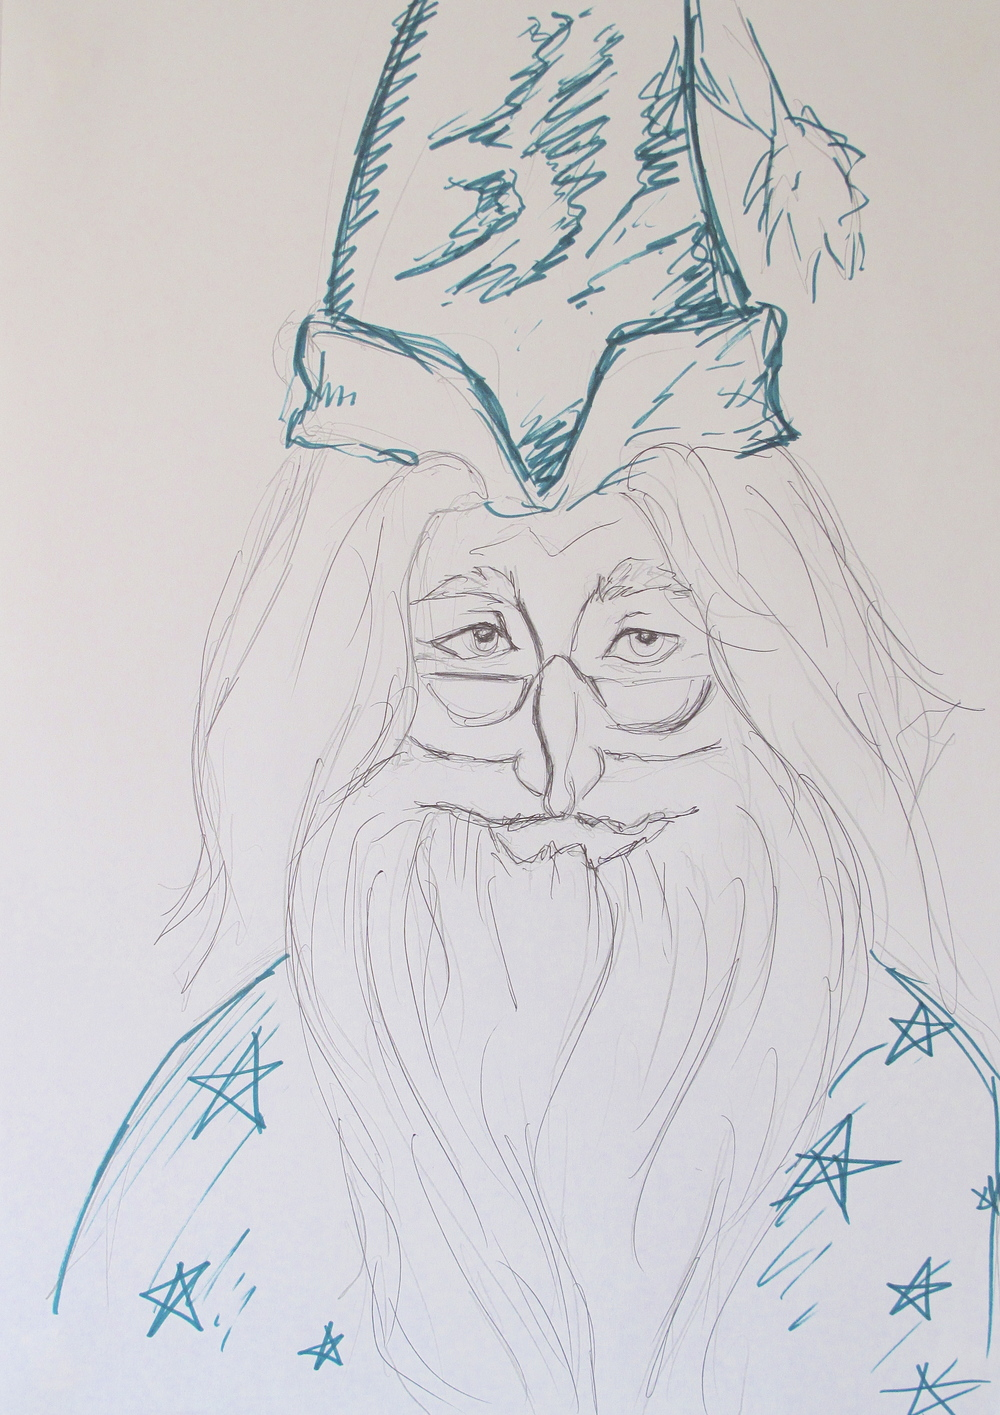 Dumbledore pen rough sketch